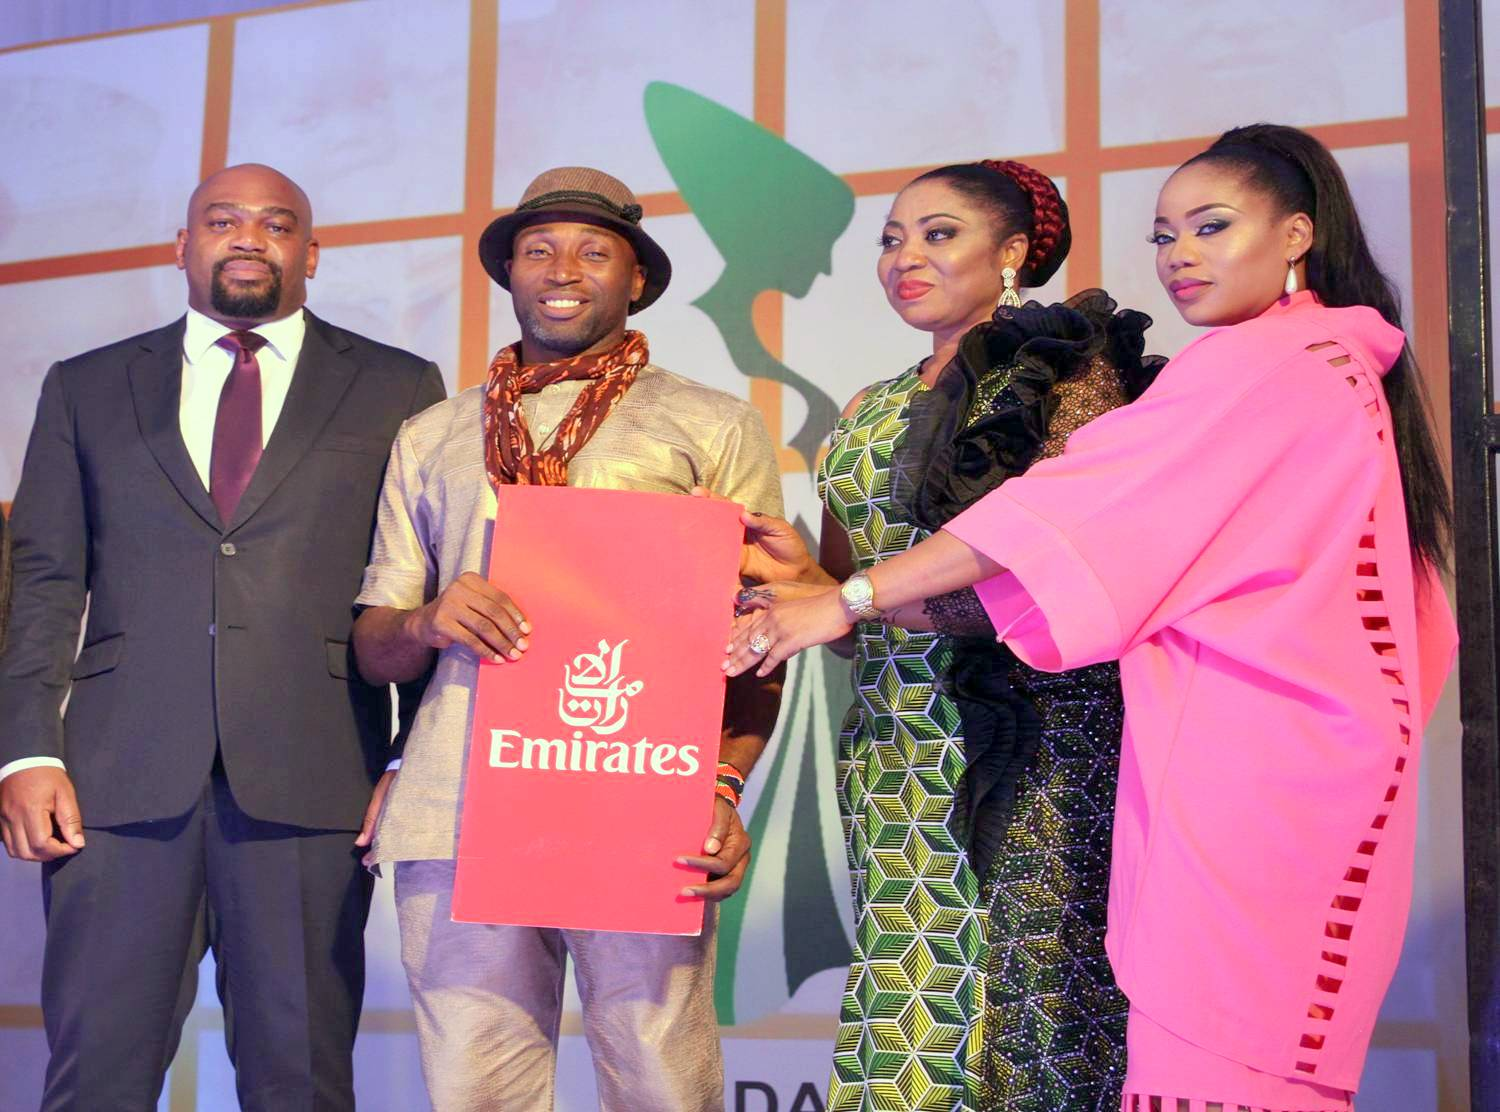 ek-sales-manager-winner-of-raffle-draw-fadan-president-and-fadan-ambassador